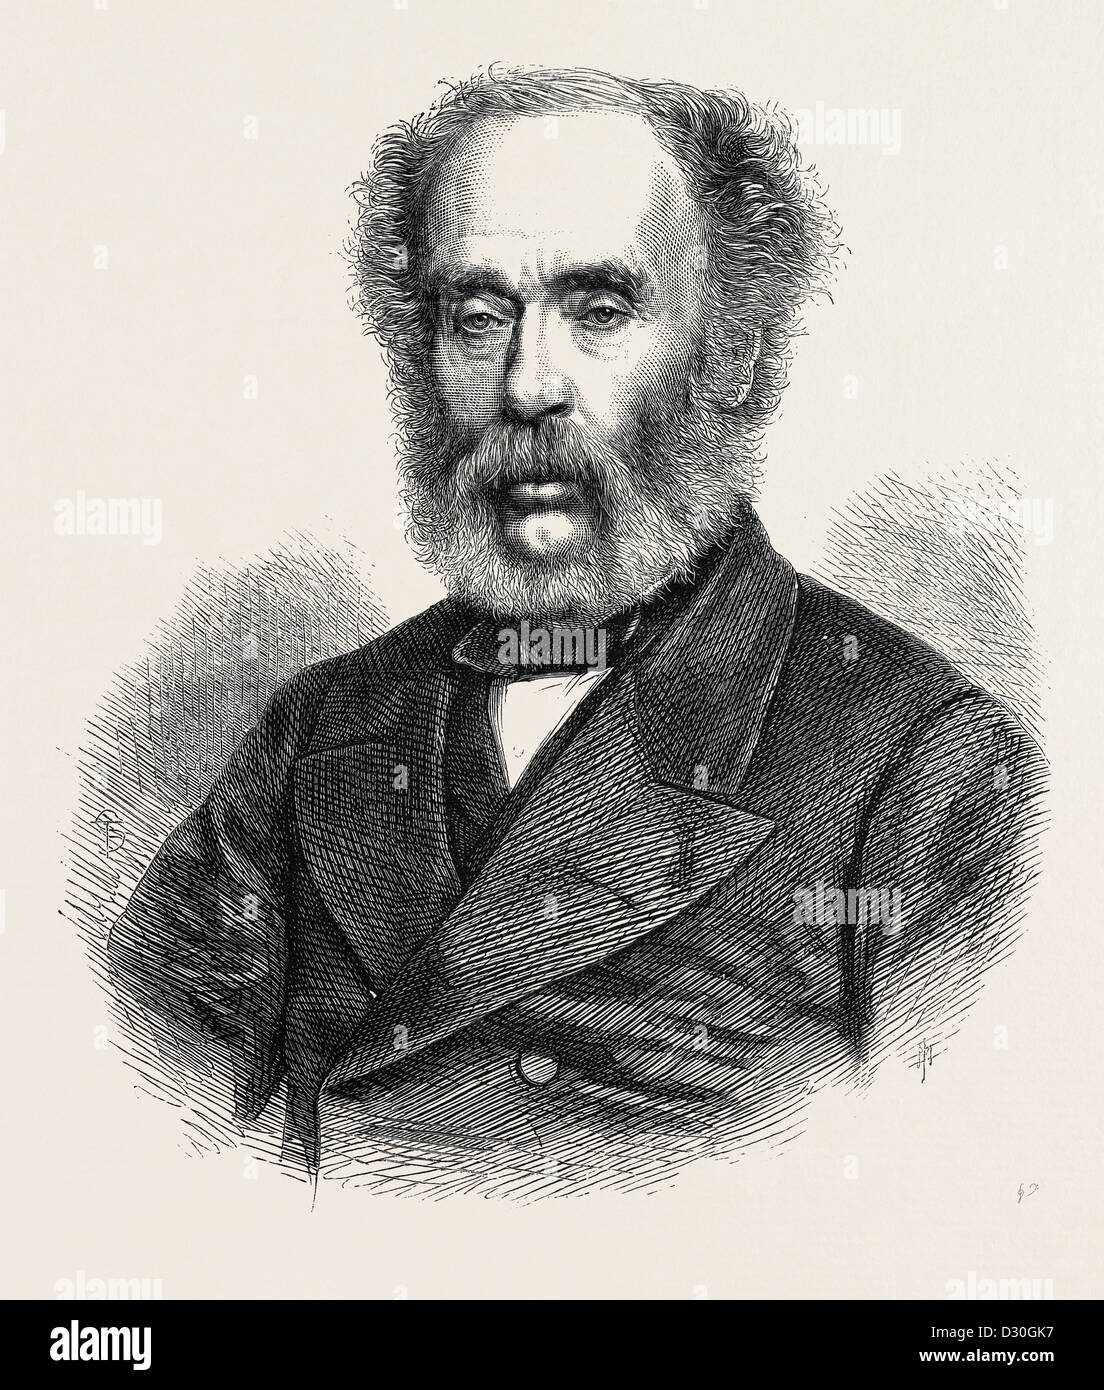 MR. JOSEPH WHITWORTH OF MANCHESTER. FOUNDER OF THE WHITWORTH SCHOLARSHIPS OF MECHANICAL SCIENCE 1868 - Stock Image